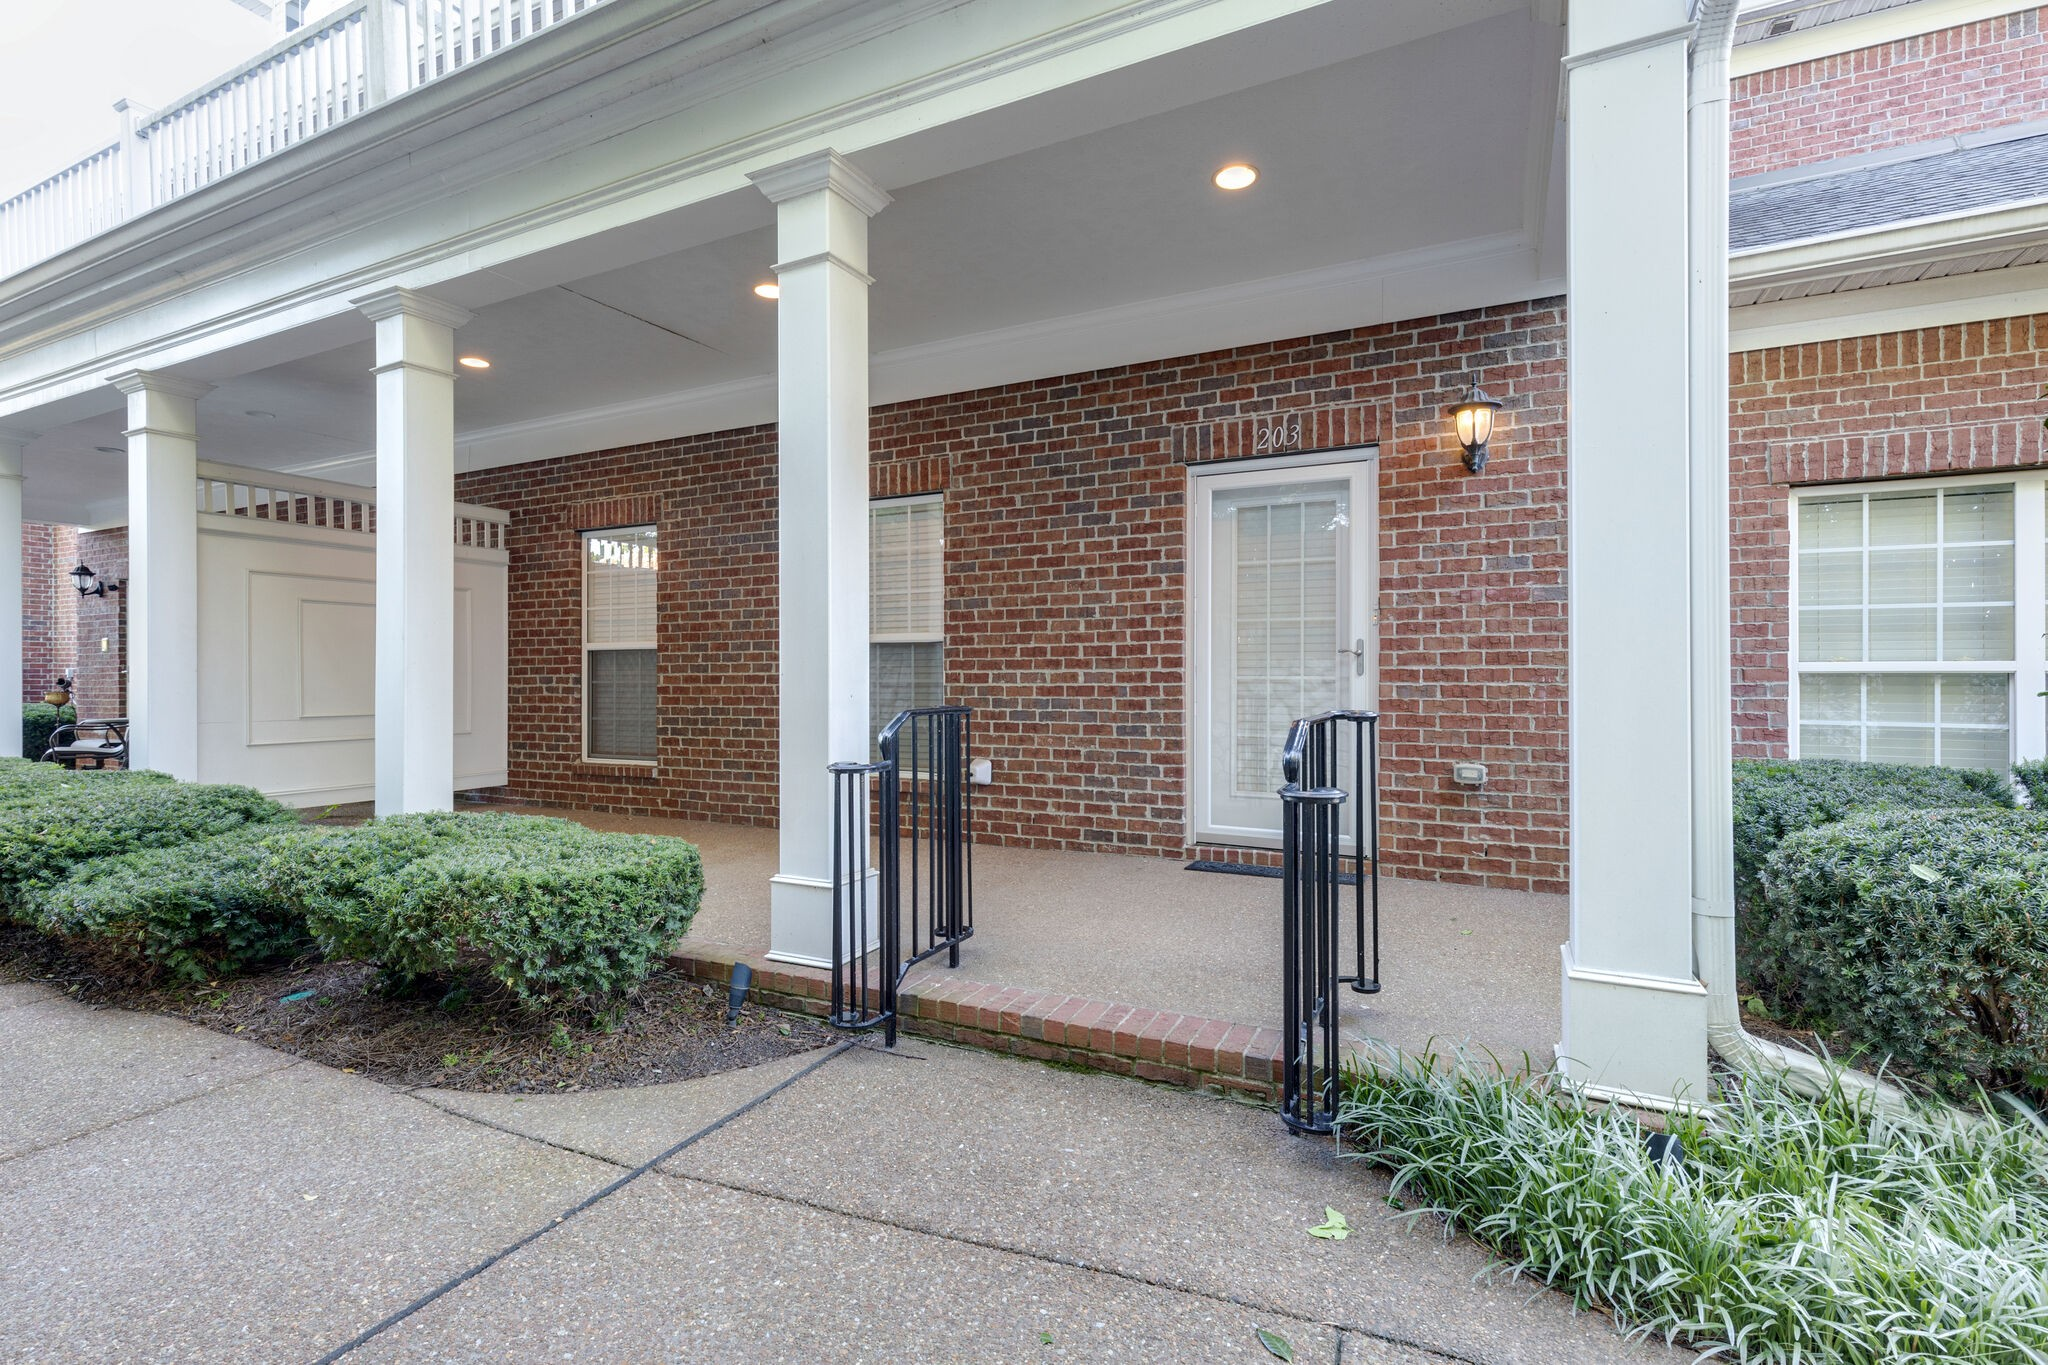 """Private gated community within walking distance to Downtown Franklin, shopping, parks & schools. One bedroom down, two story open living room with fireplace, tons of storage space, two car garage, private front porch and back patio. Has green space """"meadow"""" with gardening spots available and walk path!"""